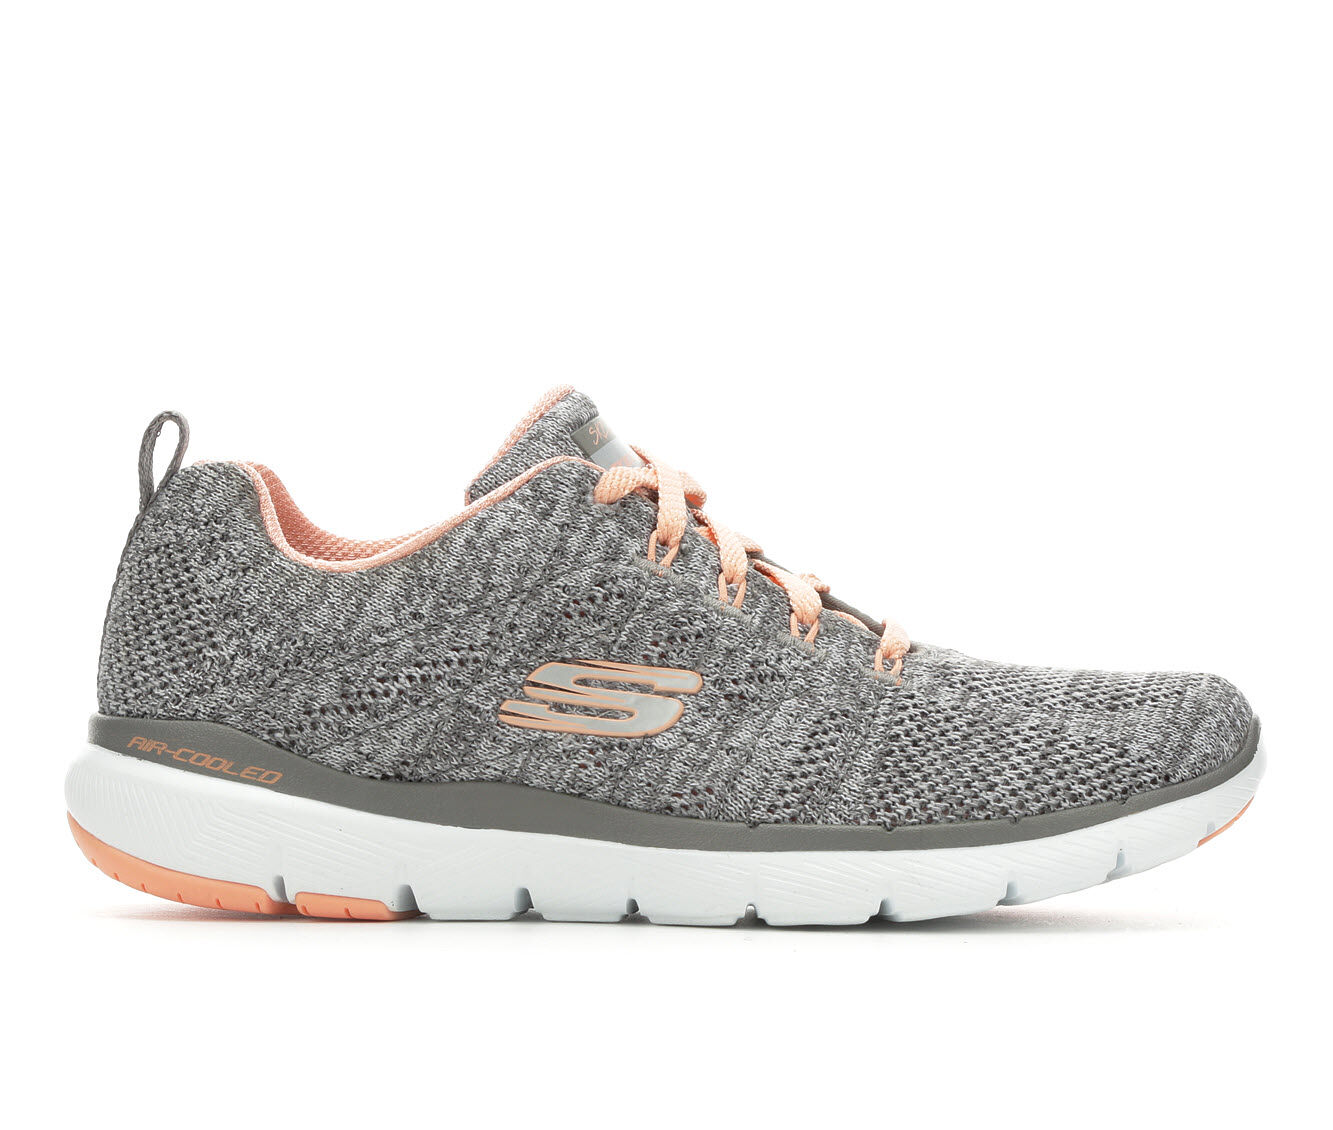 Women's Skechers High Tides 13077 Sneakers Grey/Coral